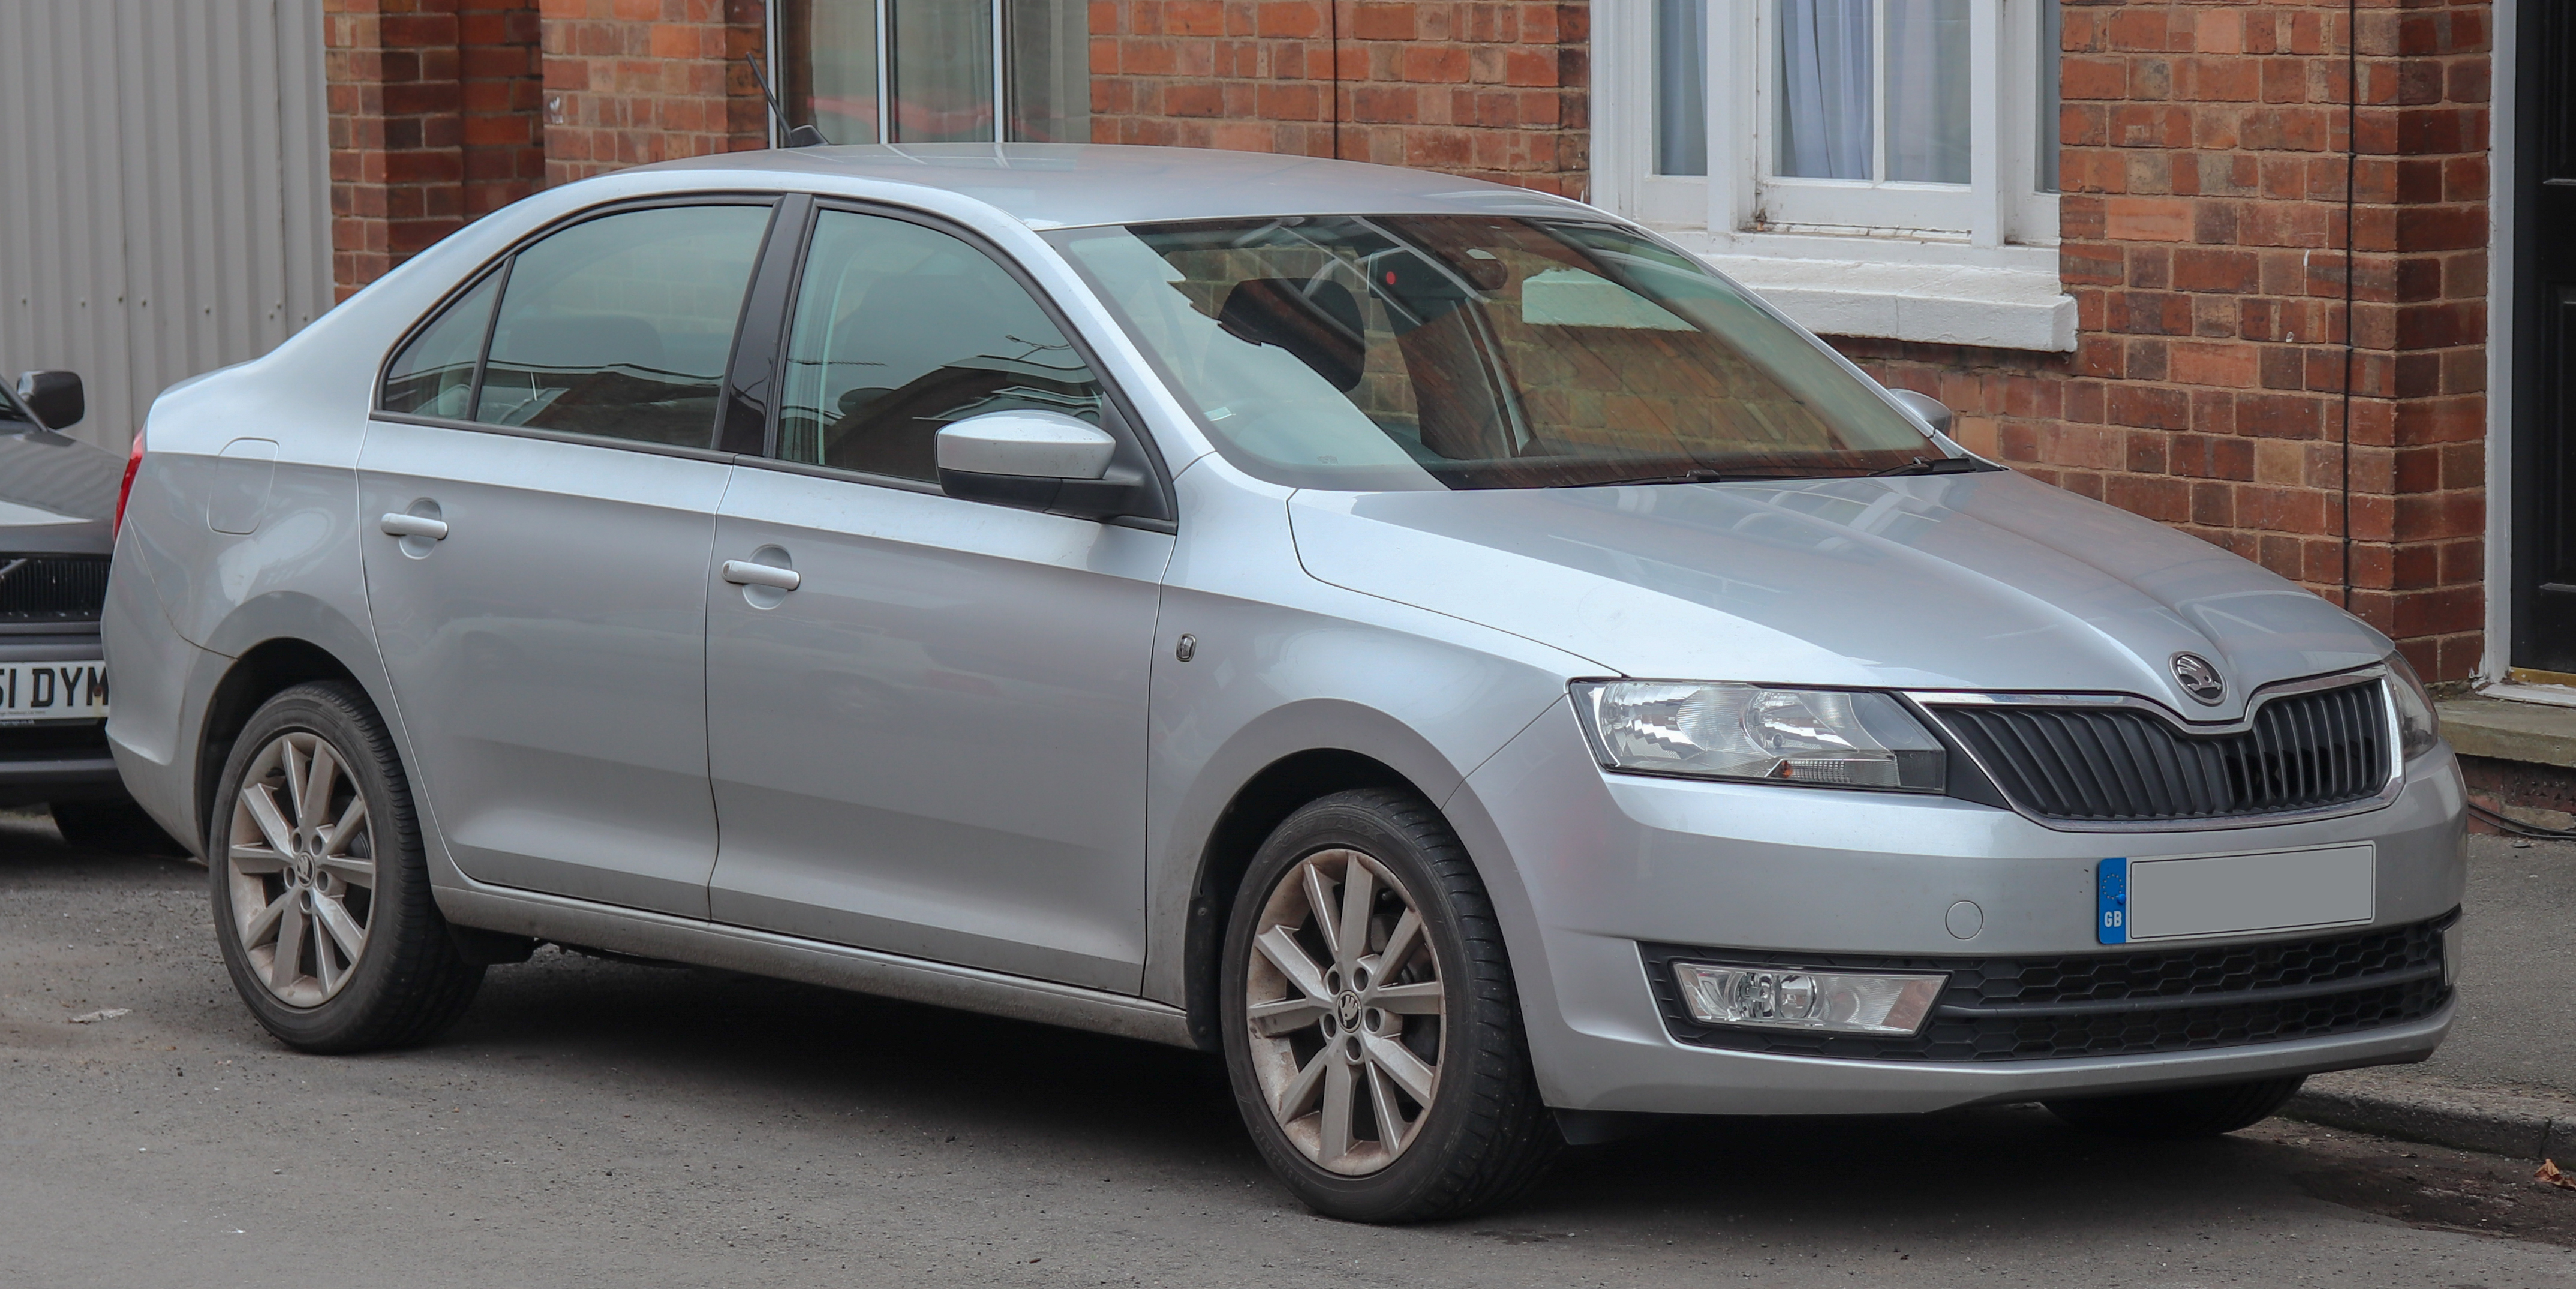 Škoda Rapid (2012) - Wikipedia